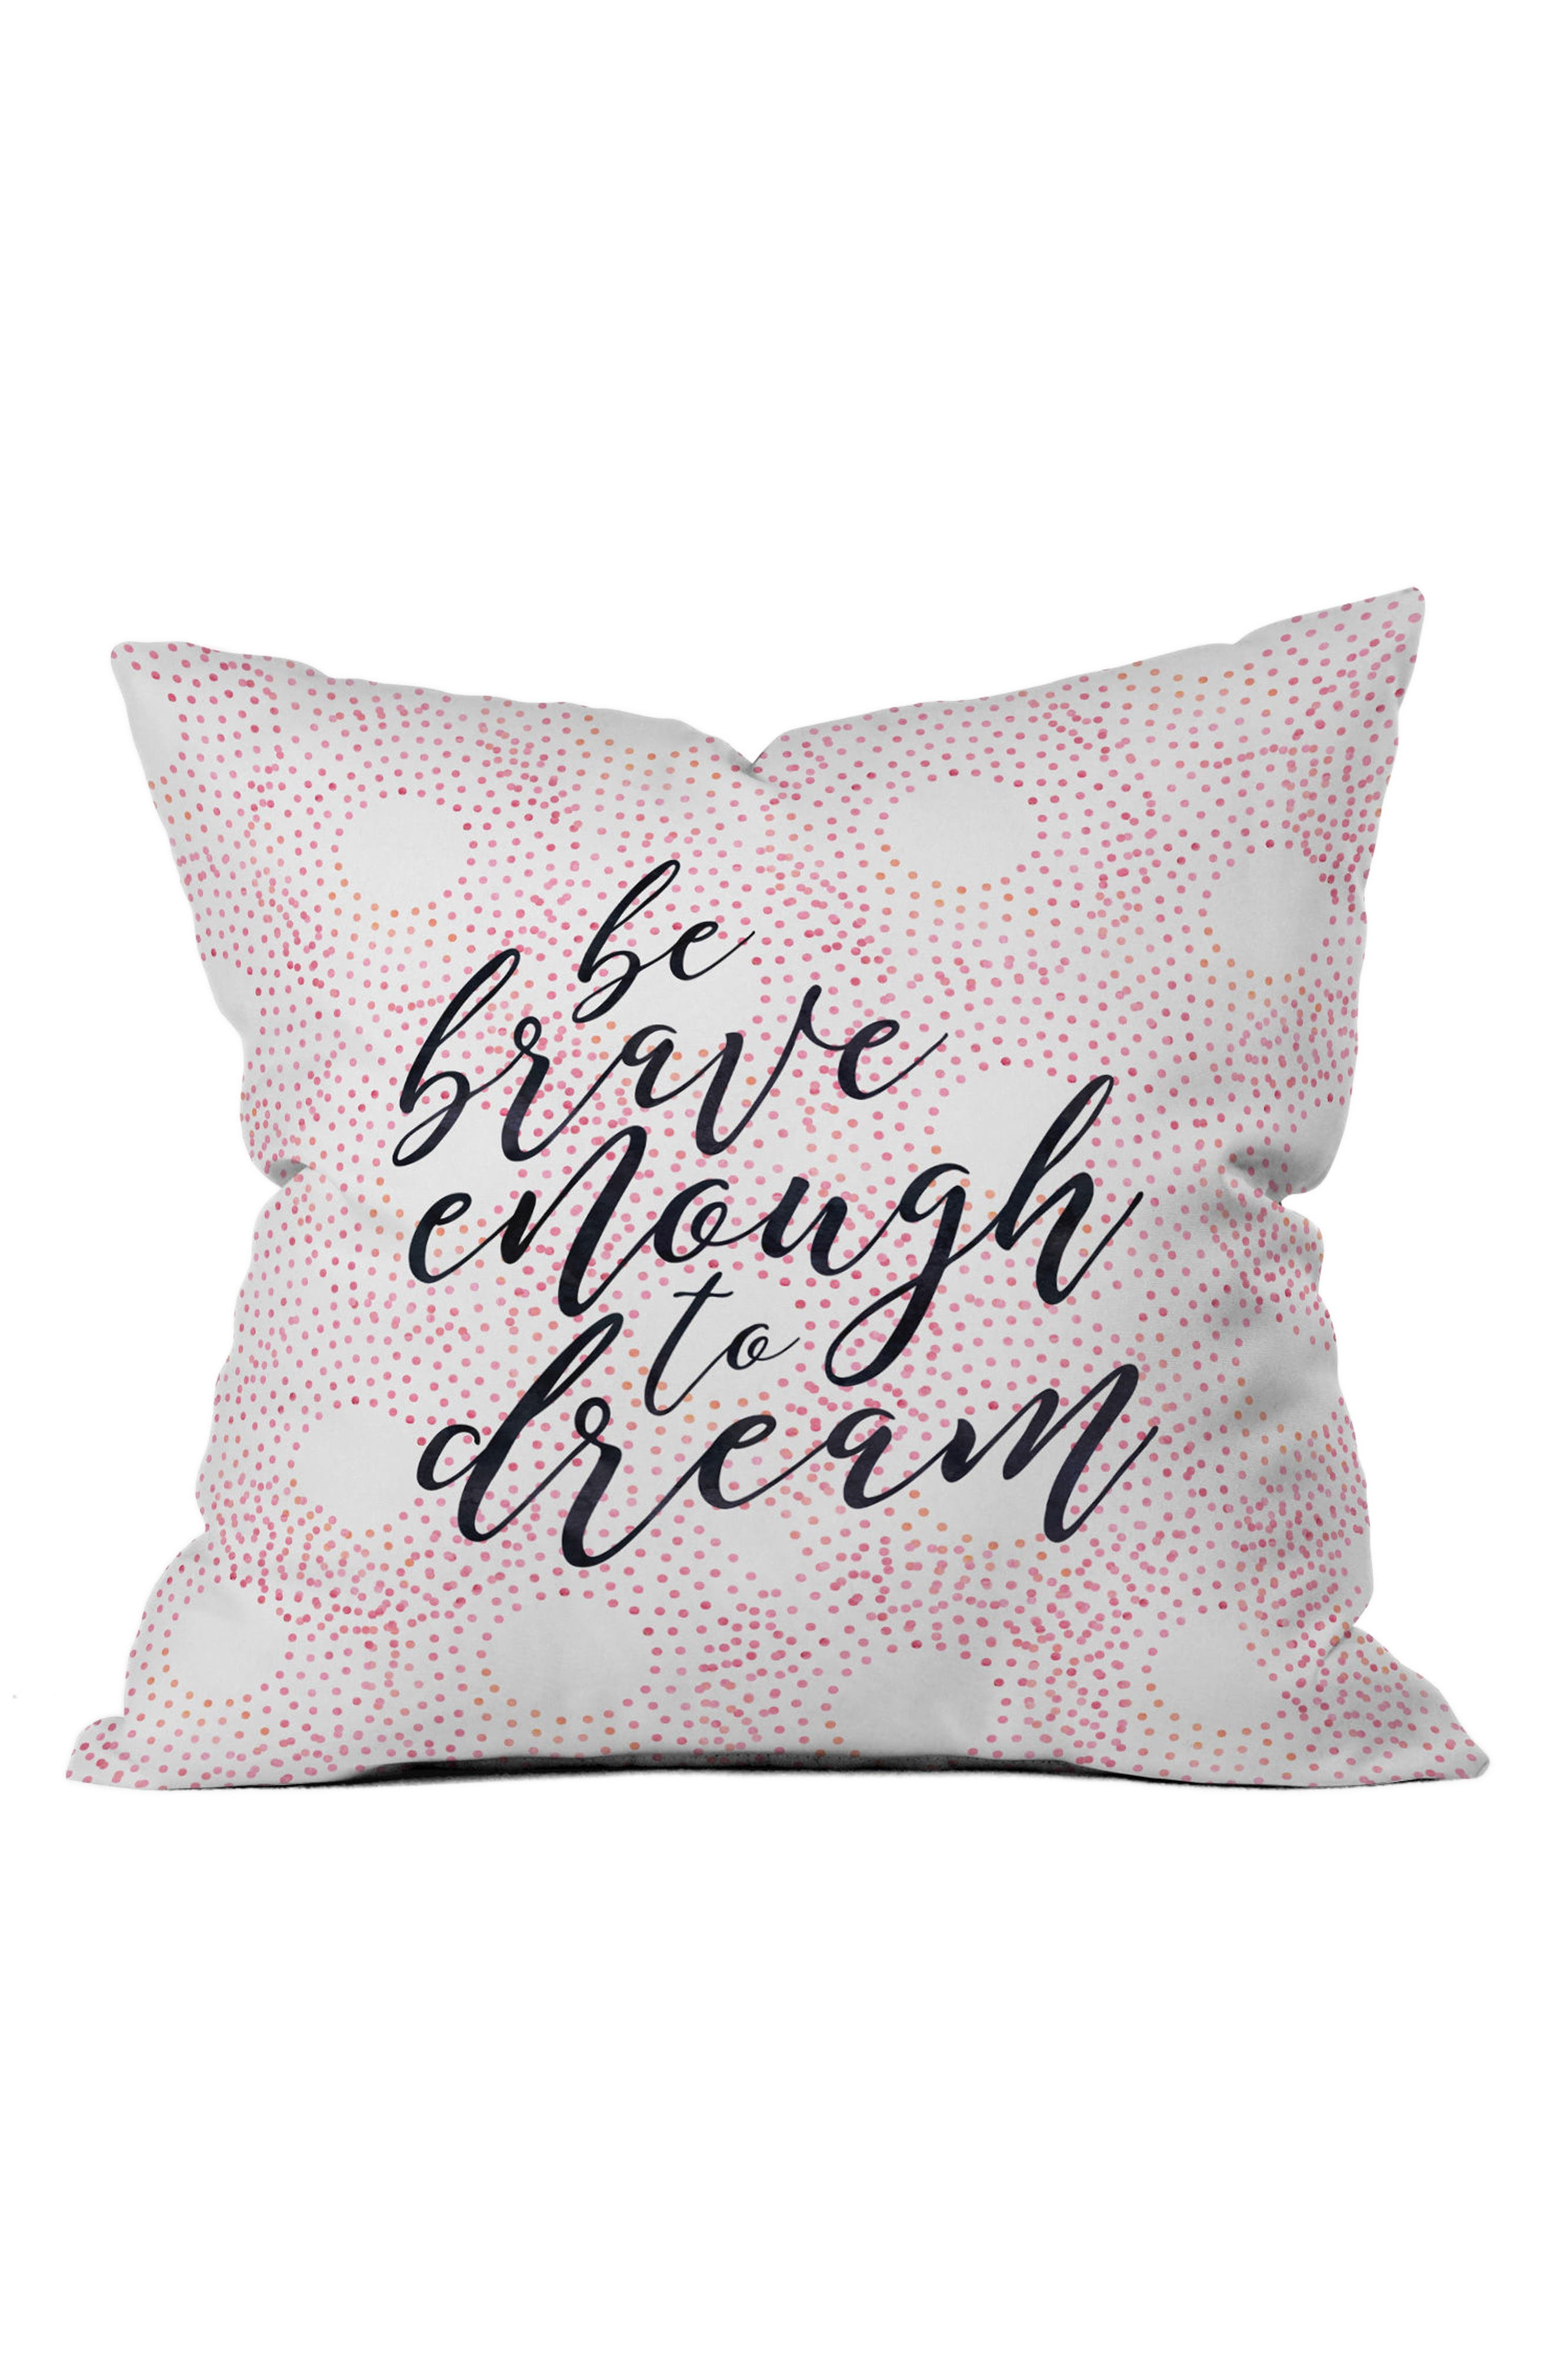 Main Image - DENY Designs Be Brave Pillow